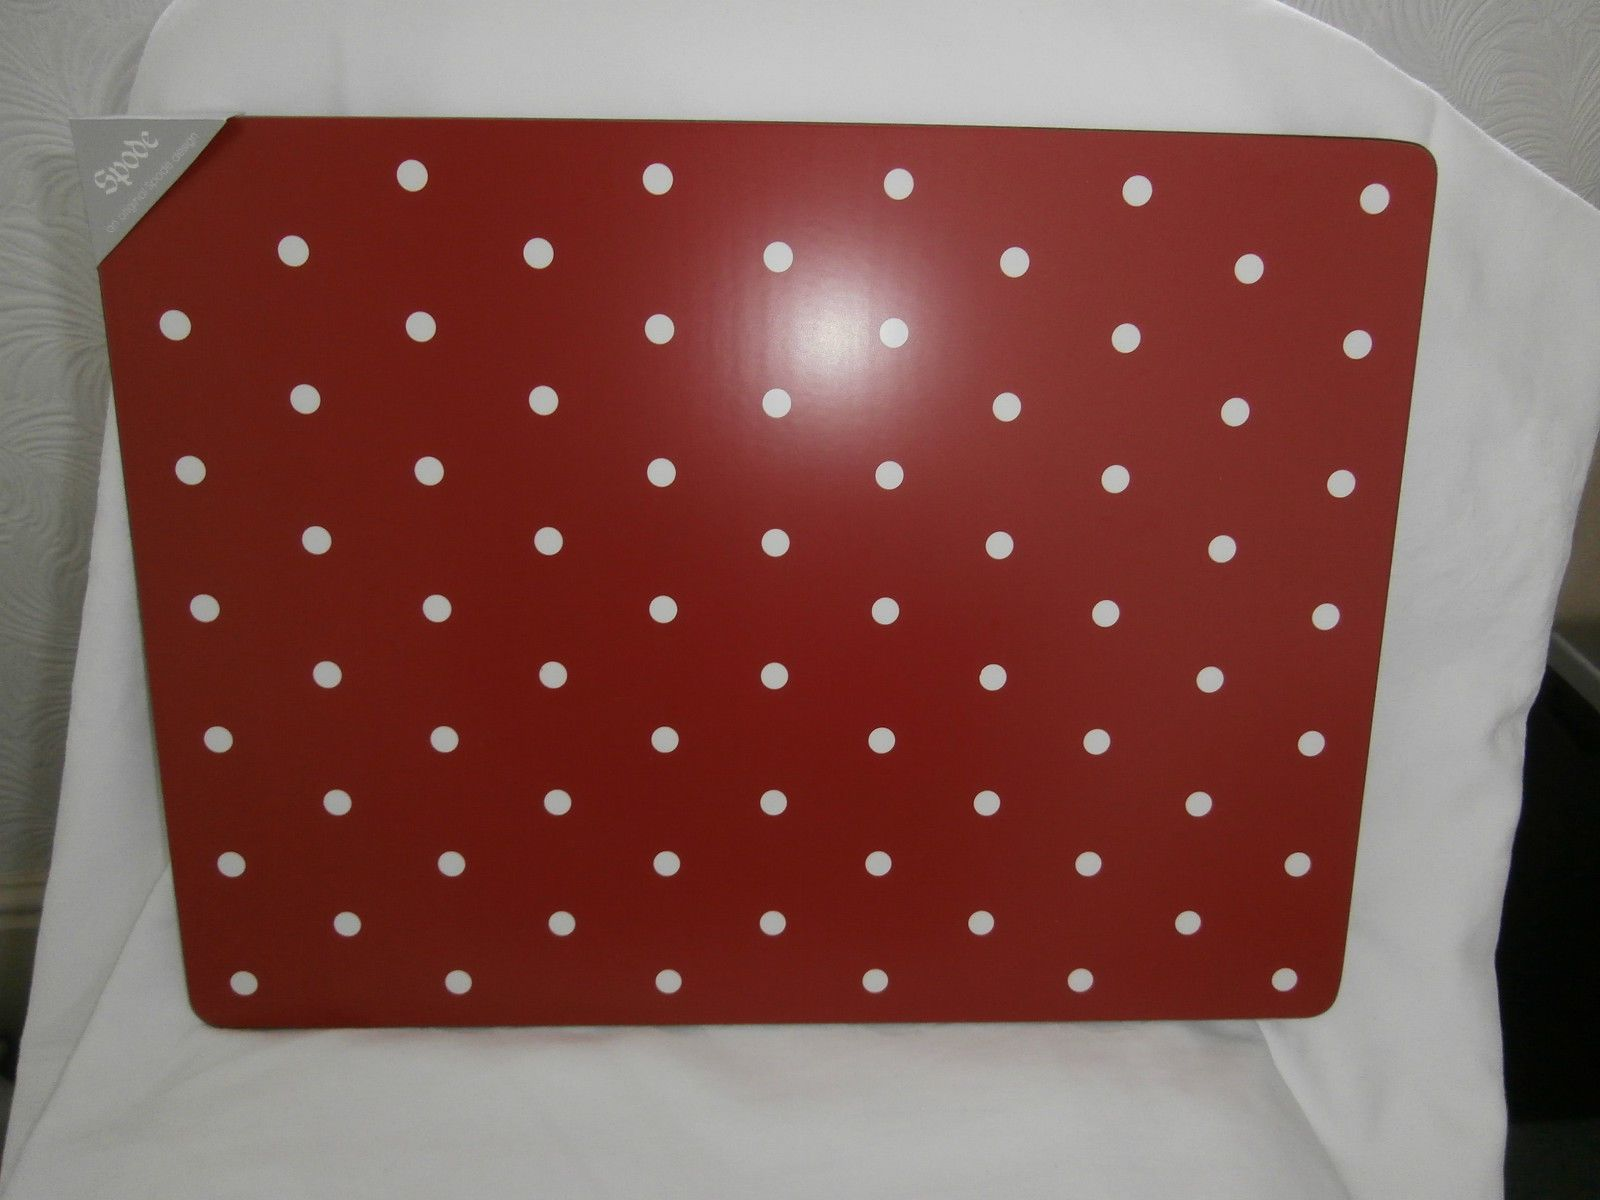 Spode baking days extra large single place mat red with white spots ...